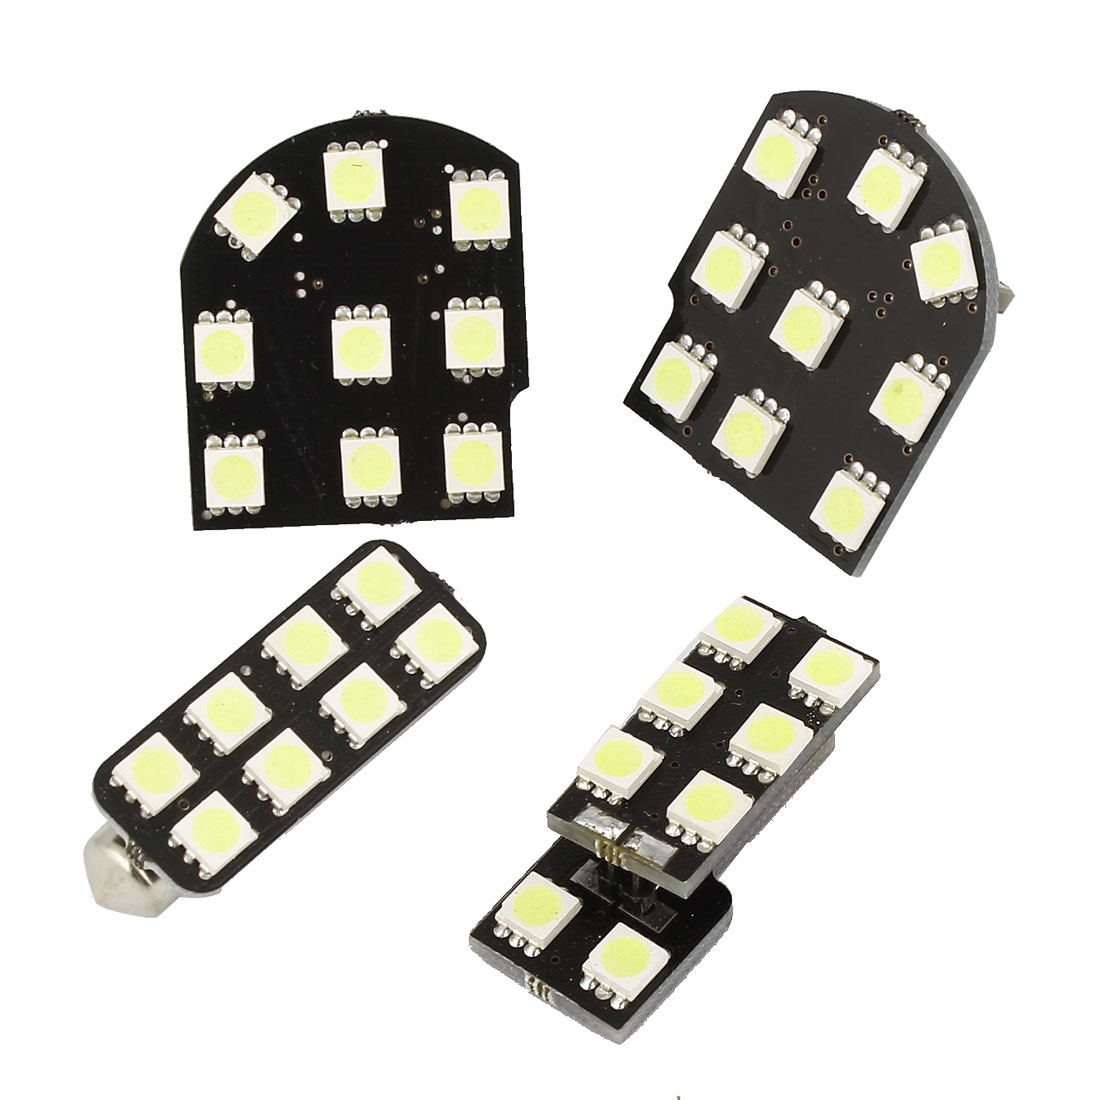 4 in 1 5050 SMD White Interior Dome Wedge Reading Light Bulb Set for Encore